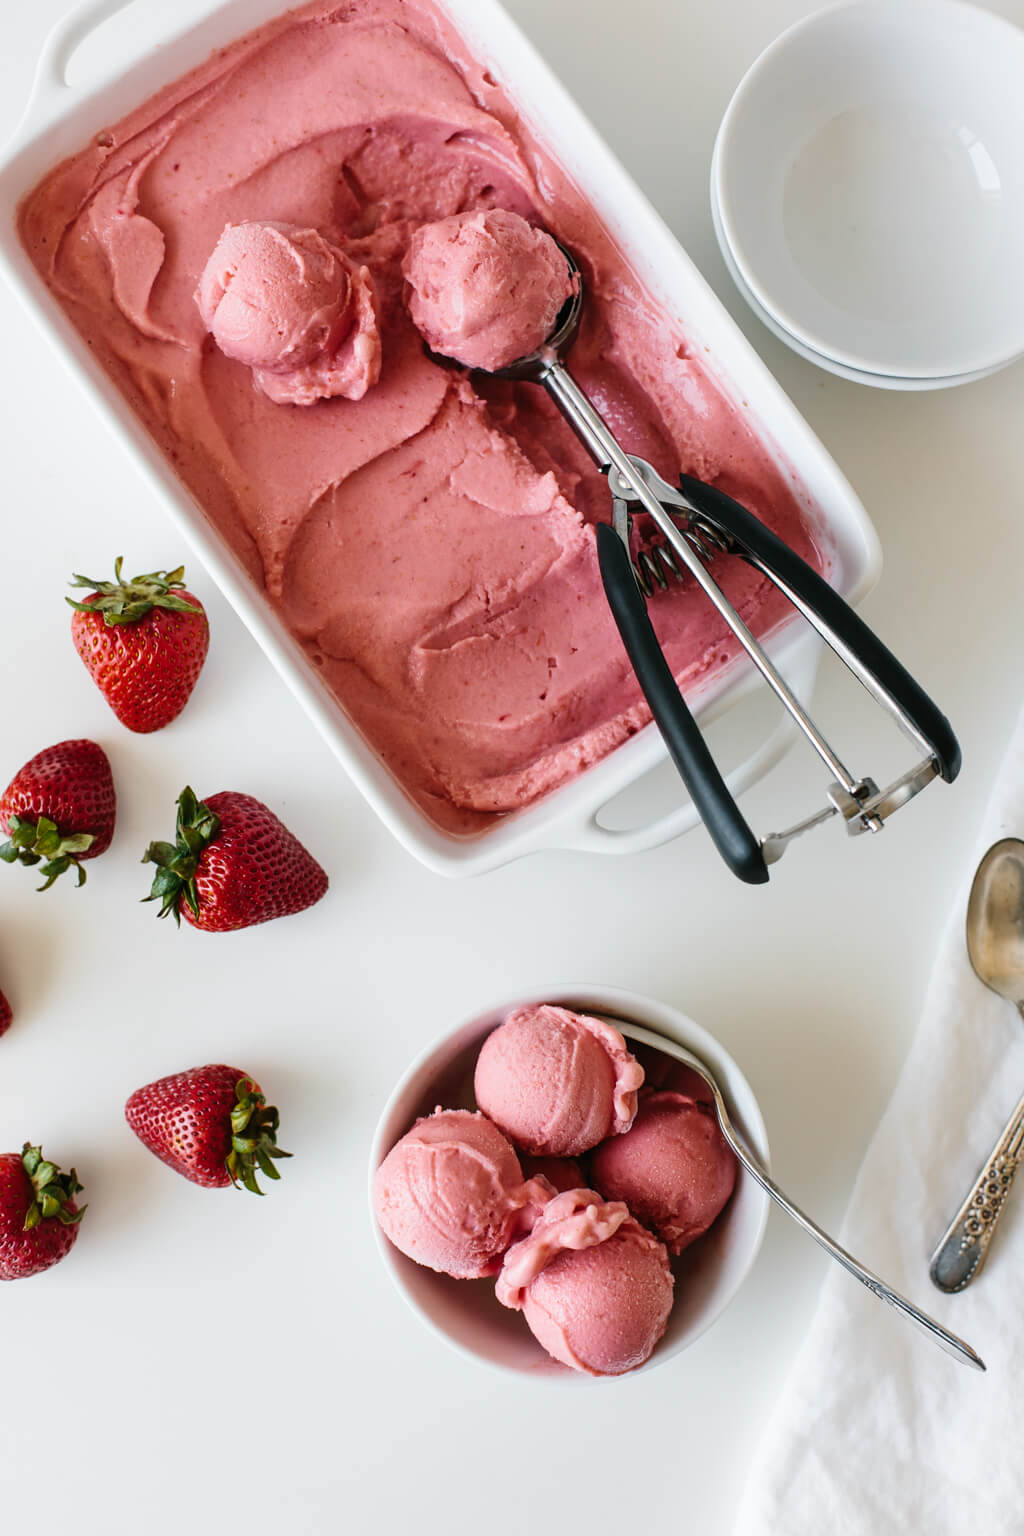 Strawberry frozen yogurt scooped into a bowl.